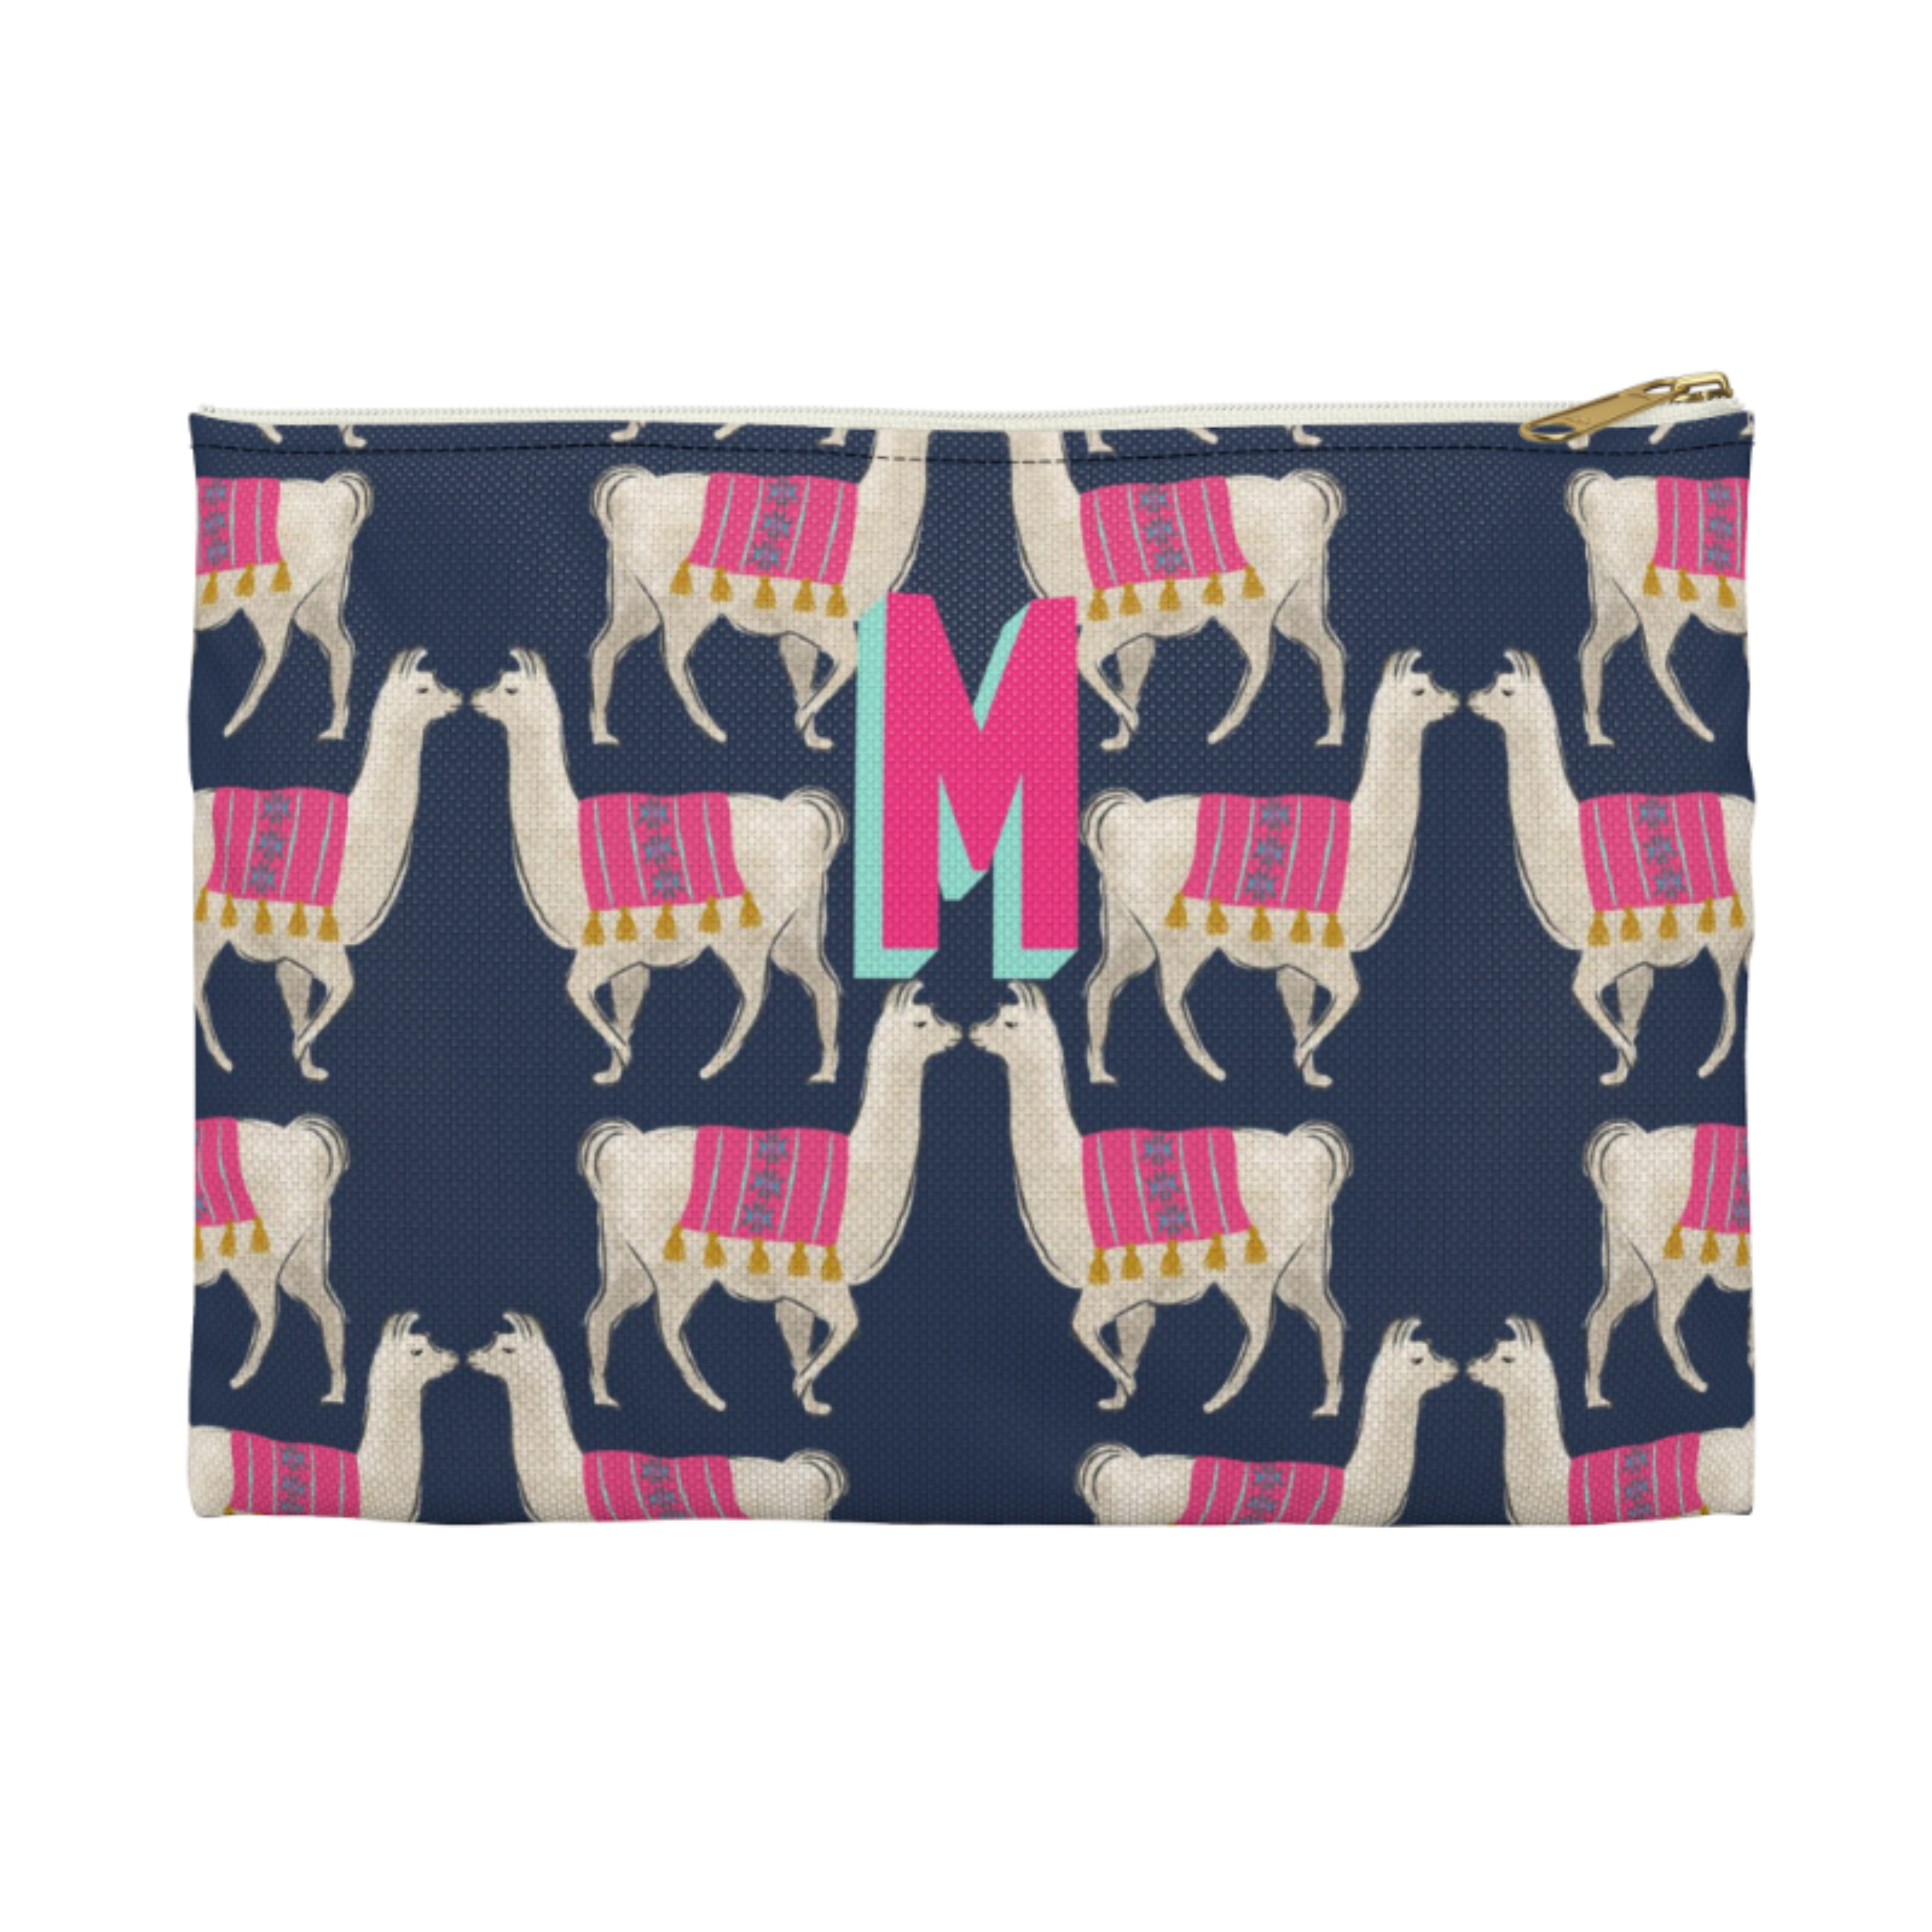 Monogrammed Llama Clutch - More Options Available